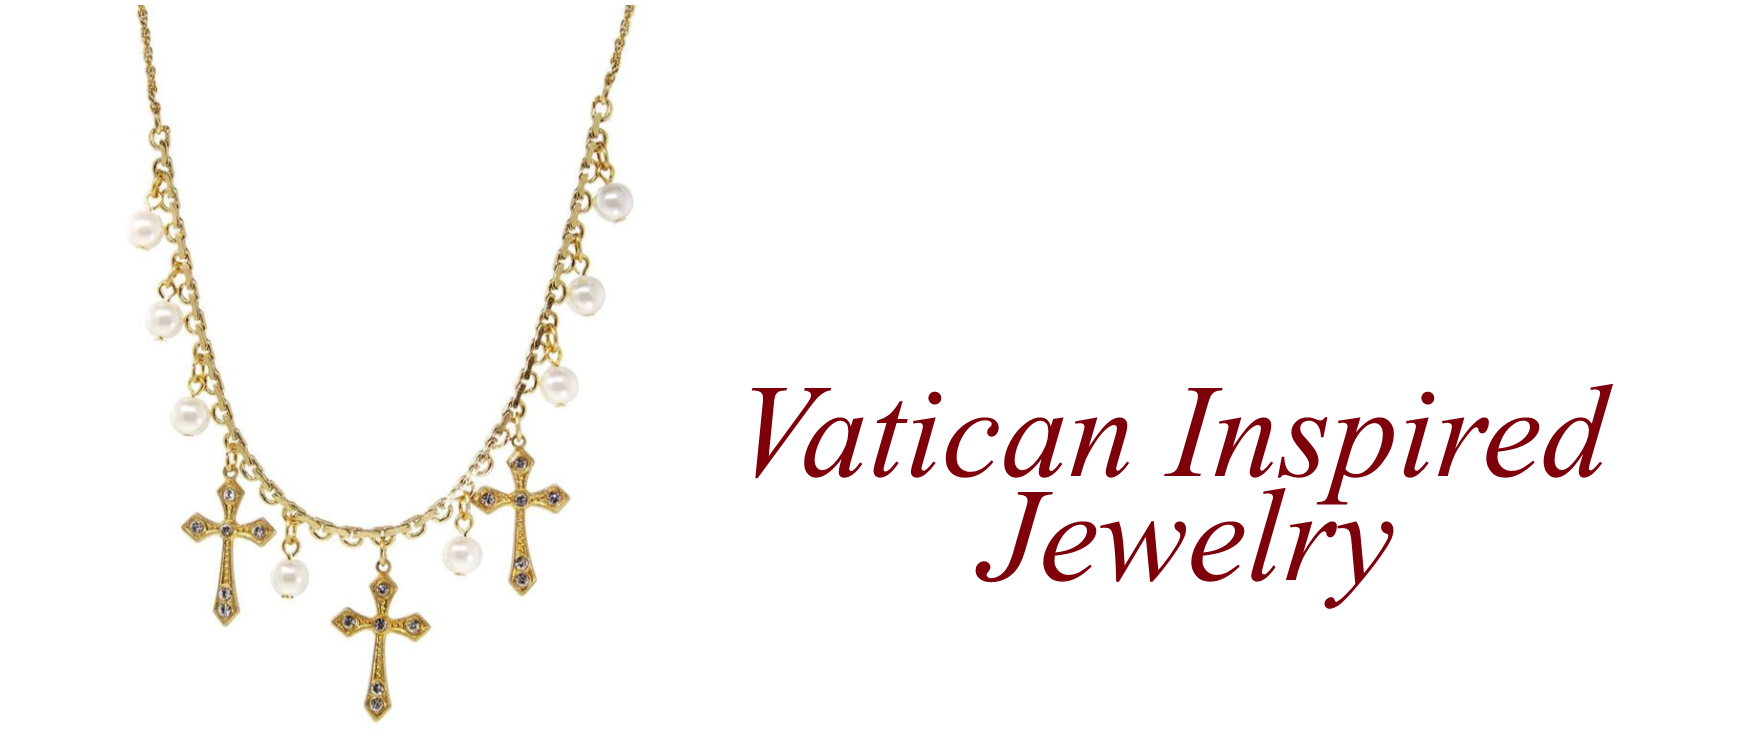 7 Vatican Inspired Jewelry - Home Page Slider